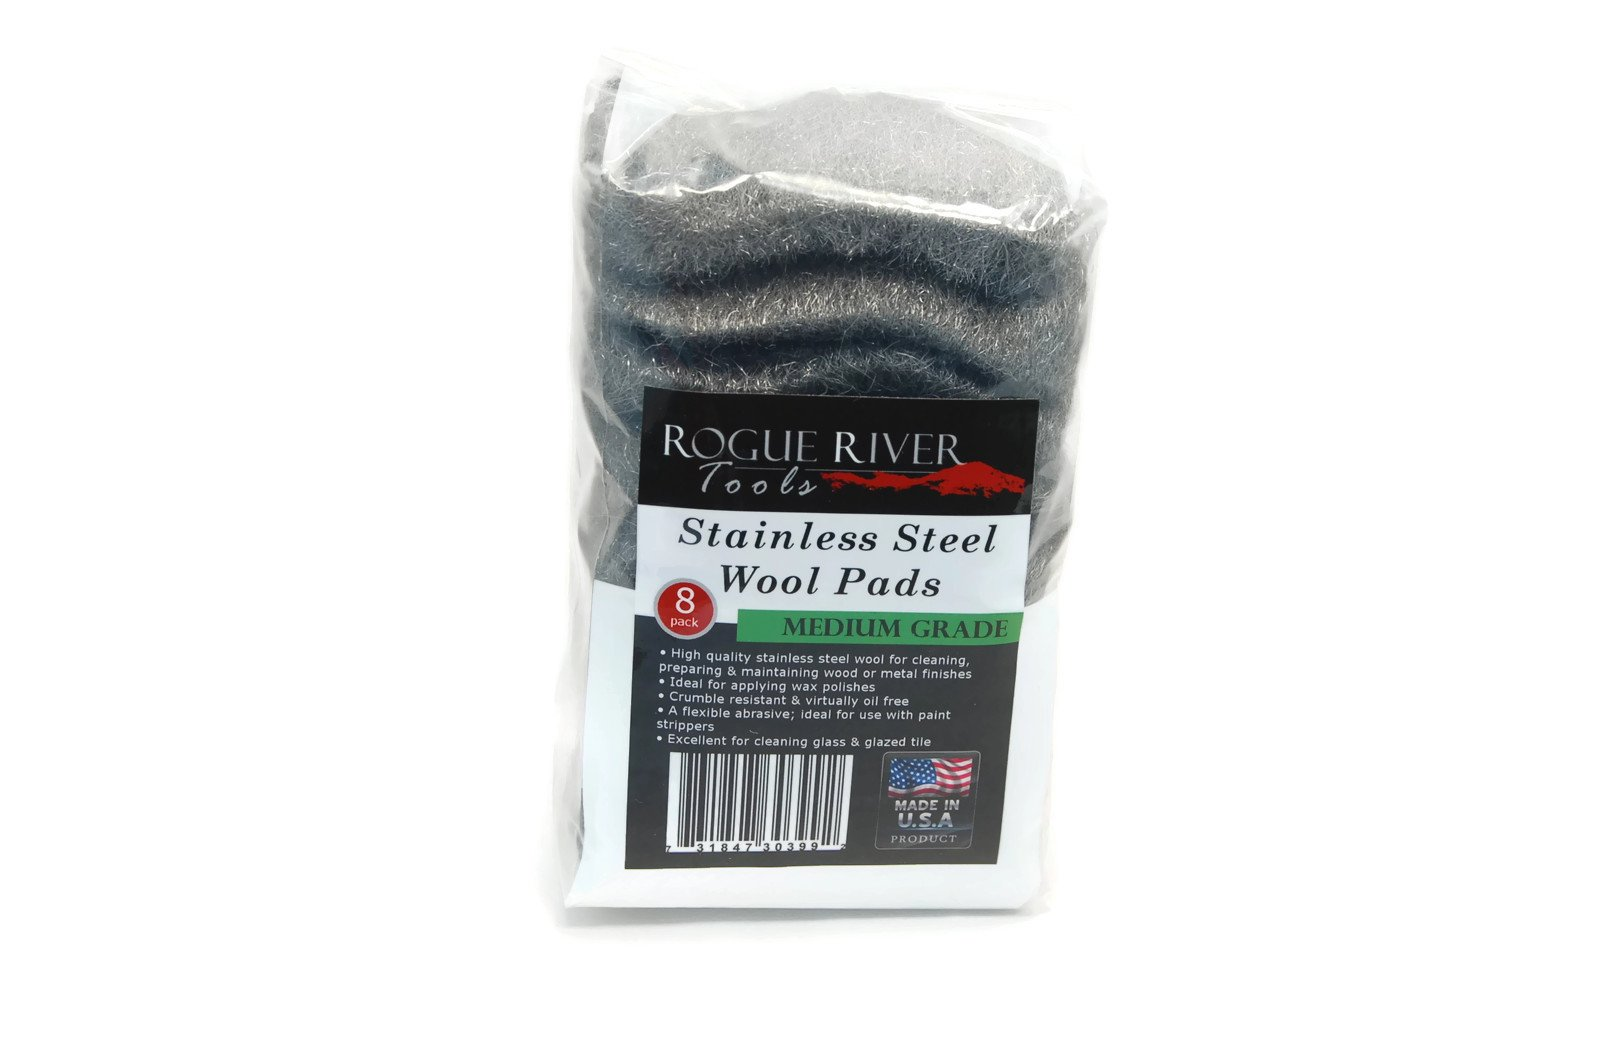 Stainless Steel Wool 8 Pad Pack (Medium) Oil Free Manufacturing - Made in USA!